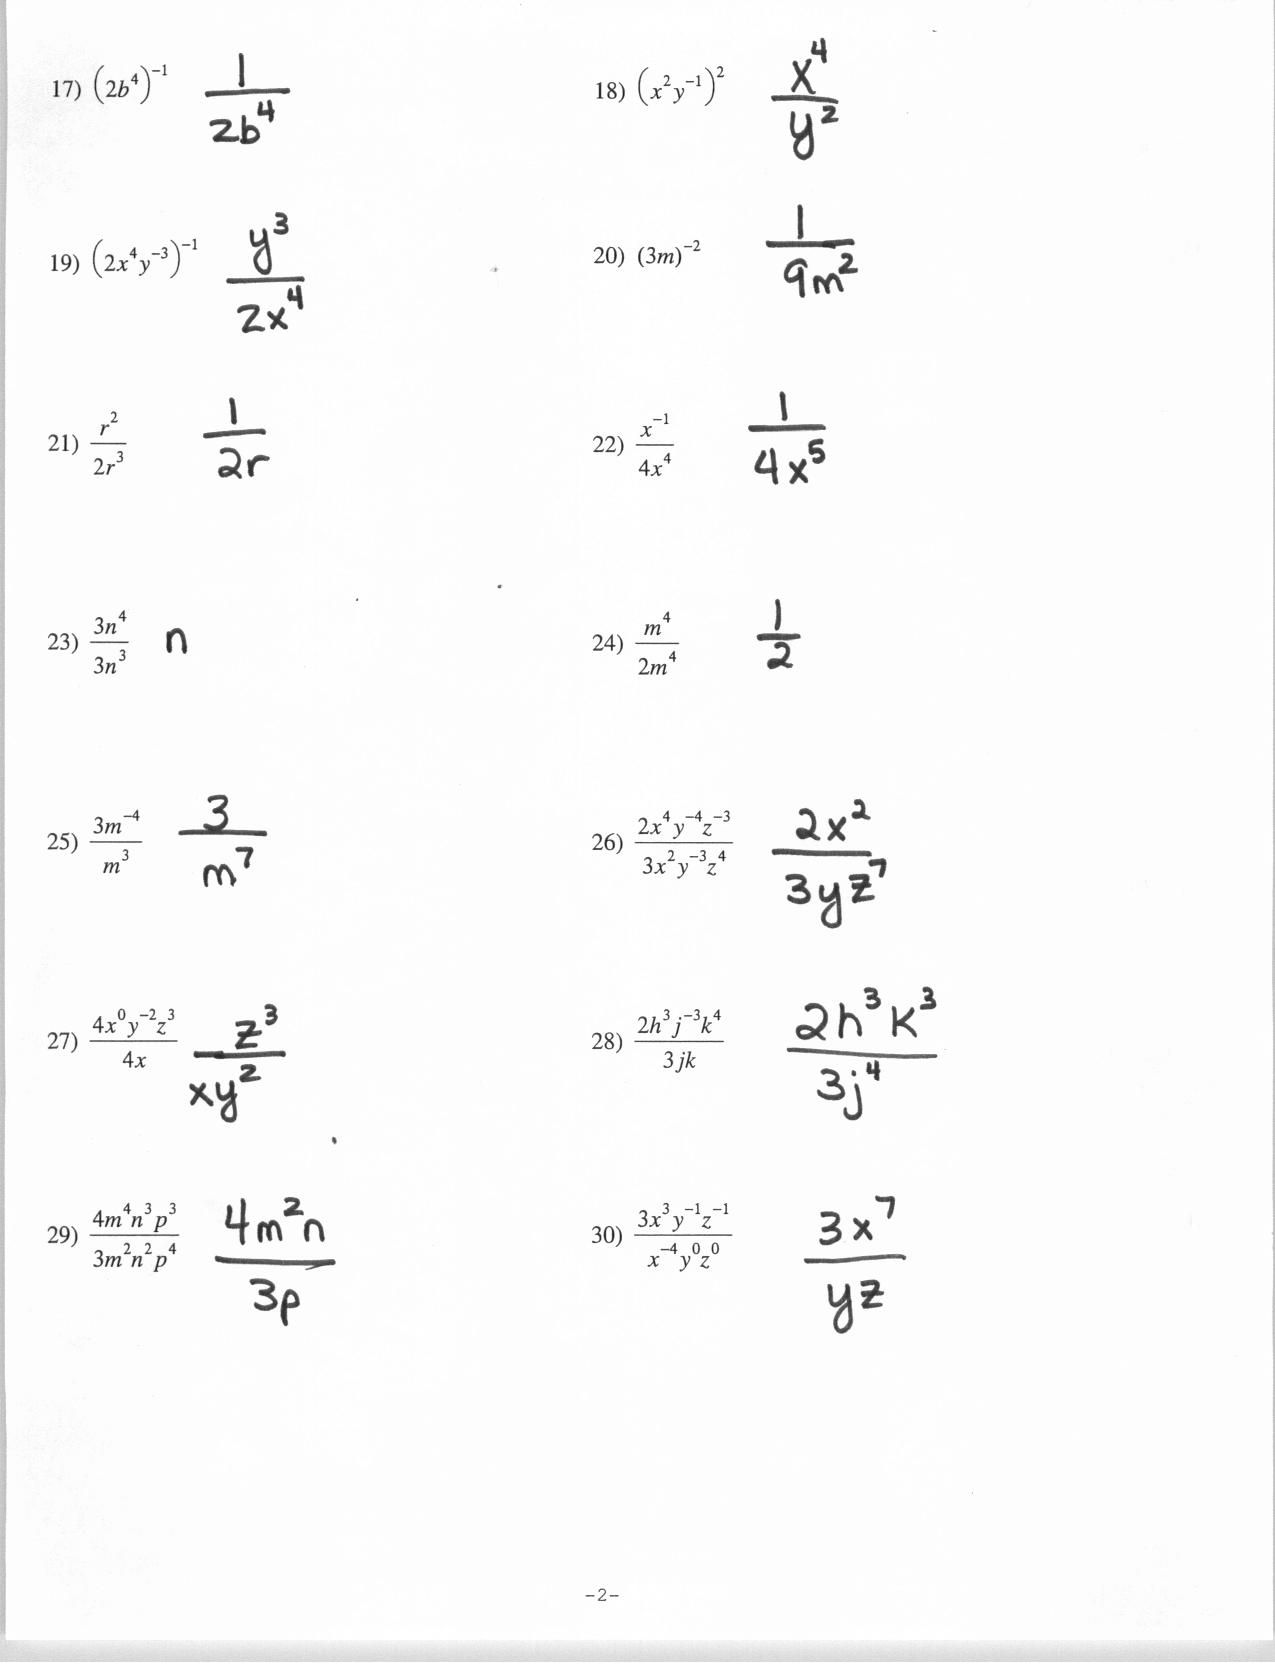 Negative Exponent Worksheet Delibertad – Negative Exponent Worksheet